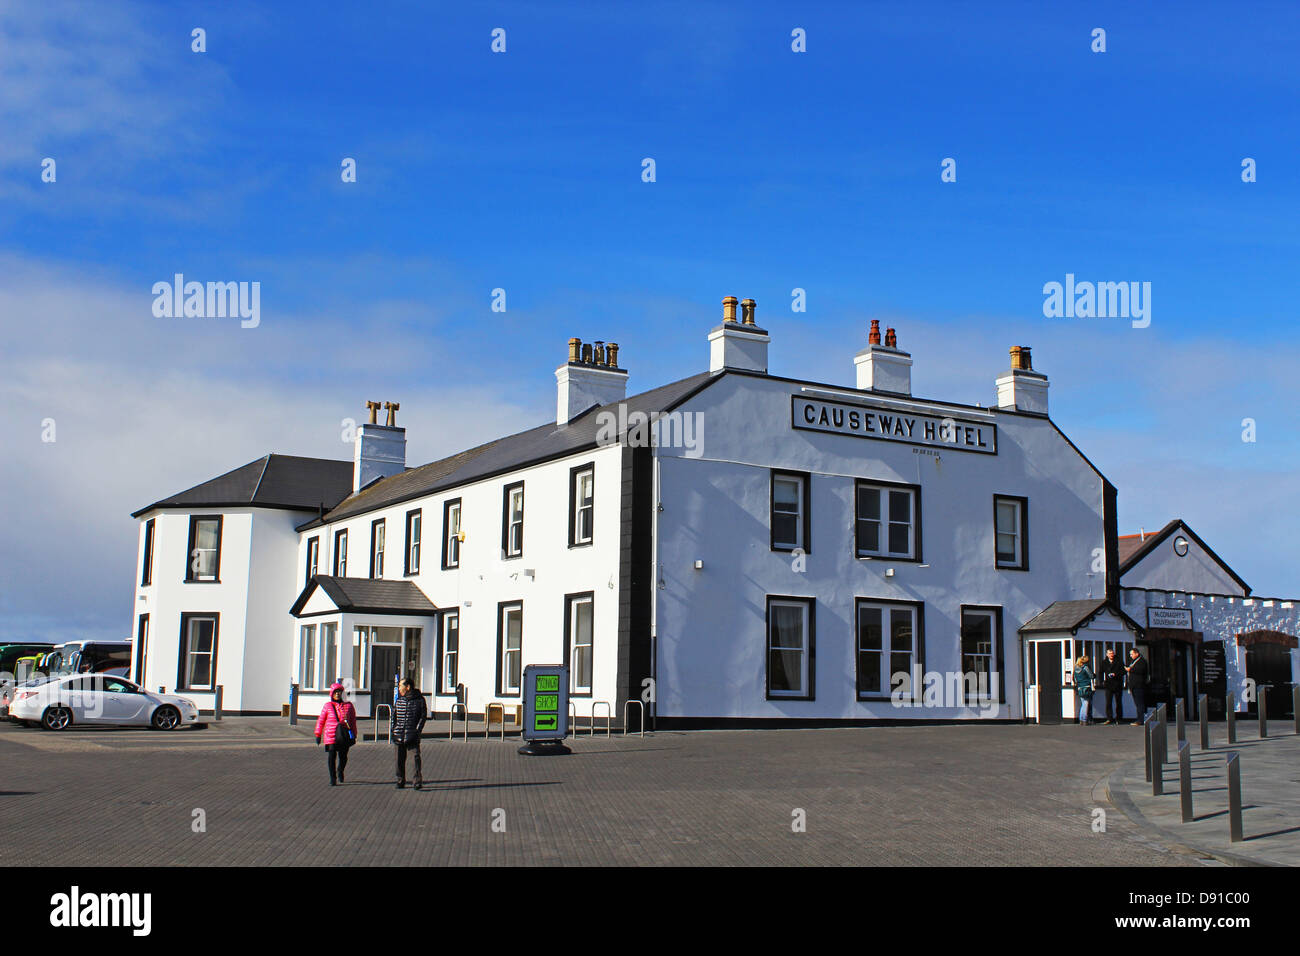 Causeway Hotel, Giant's Causeway hotel, County Antrim, Northern Ireland, UK - Stock Image